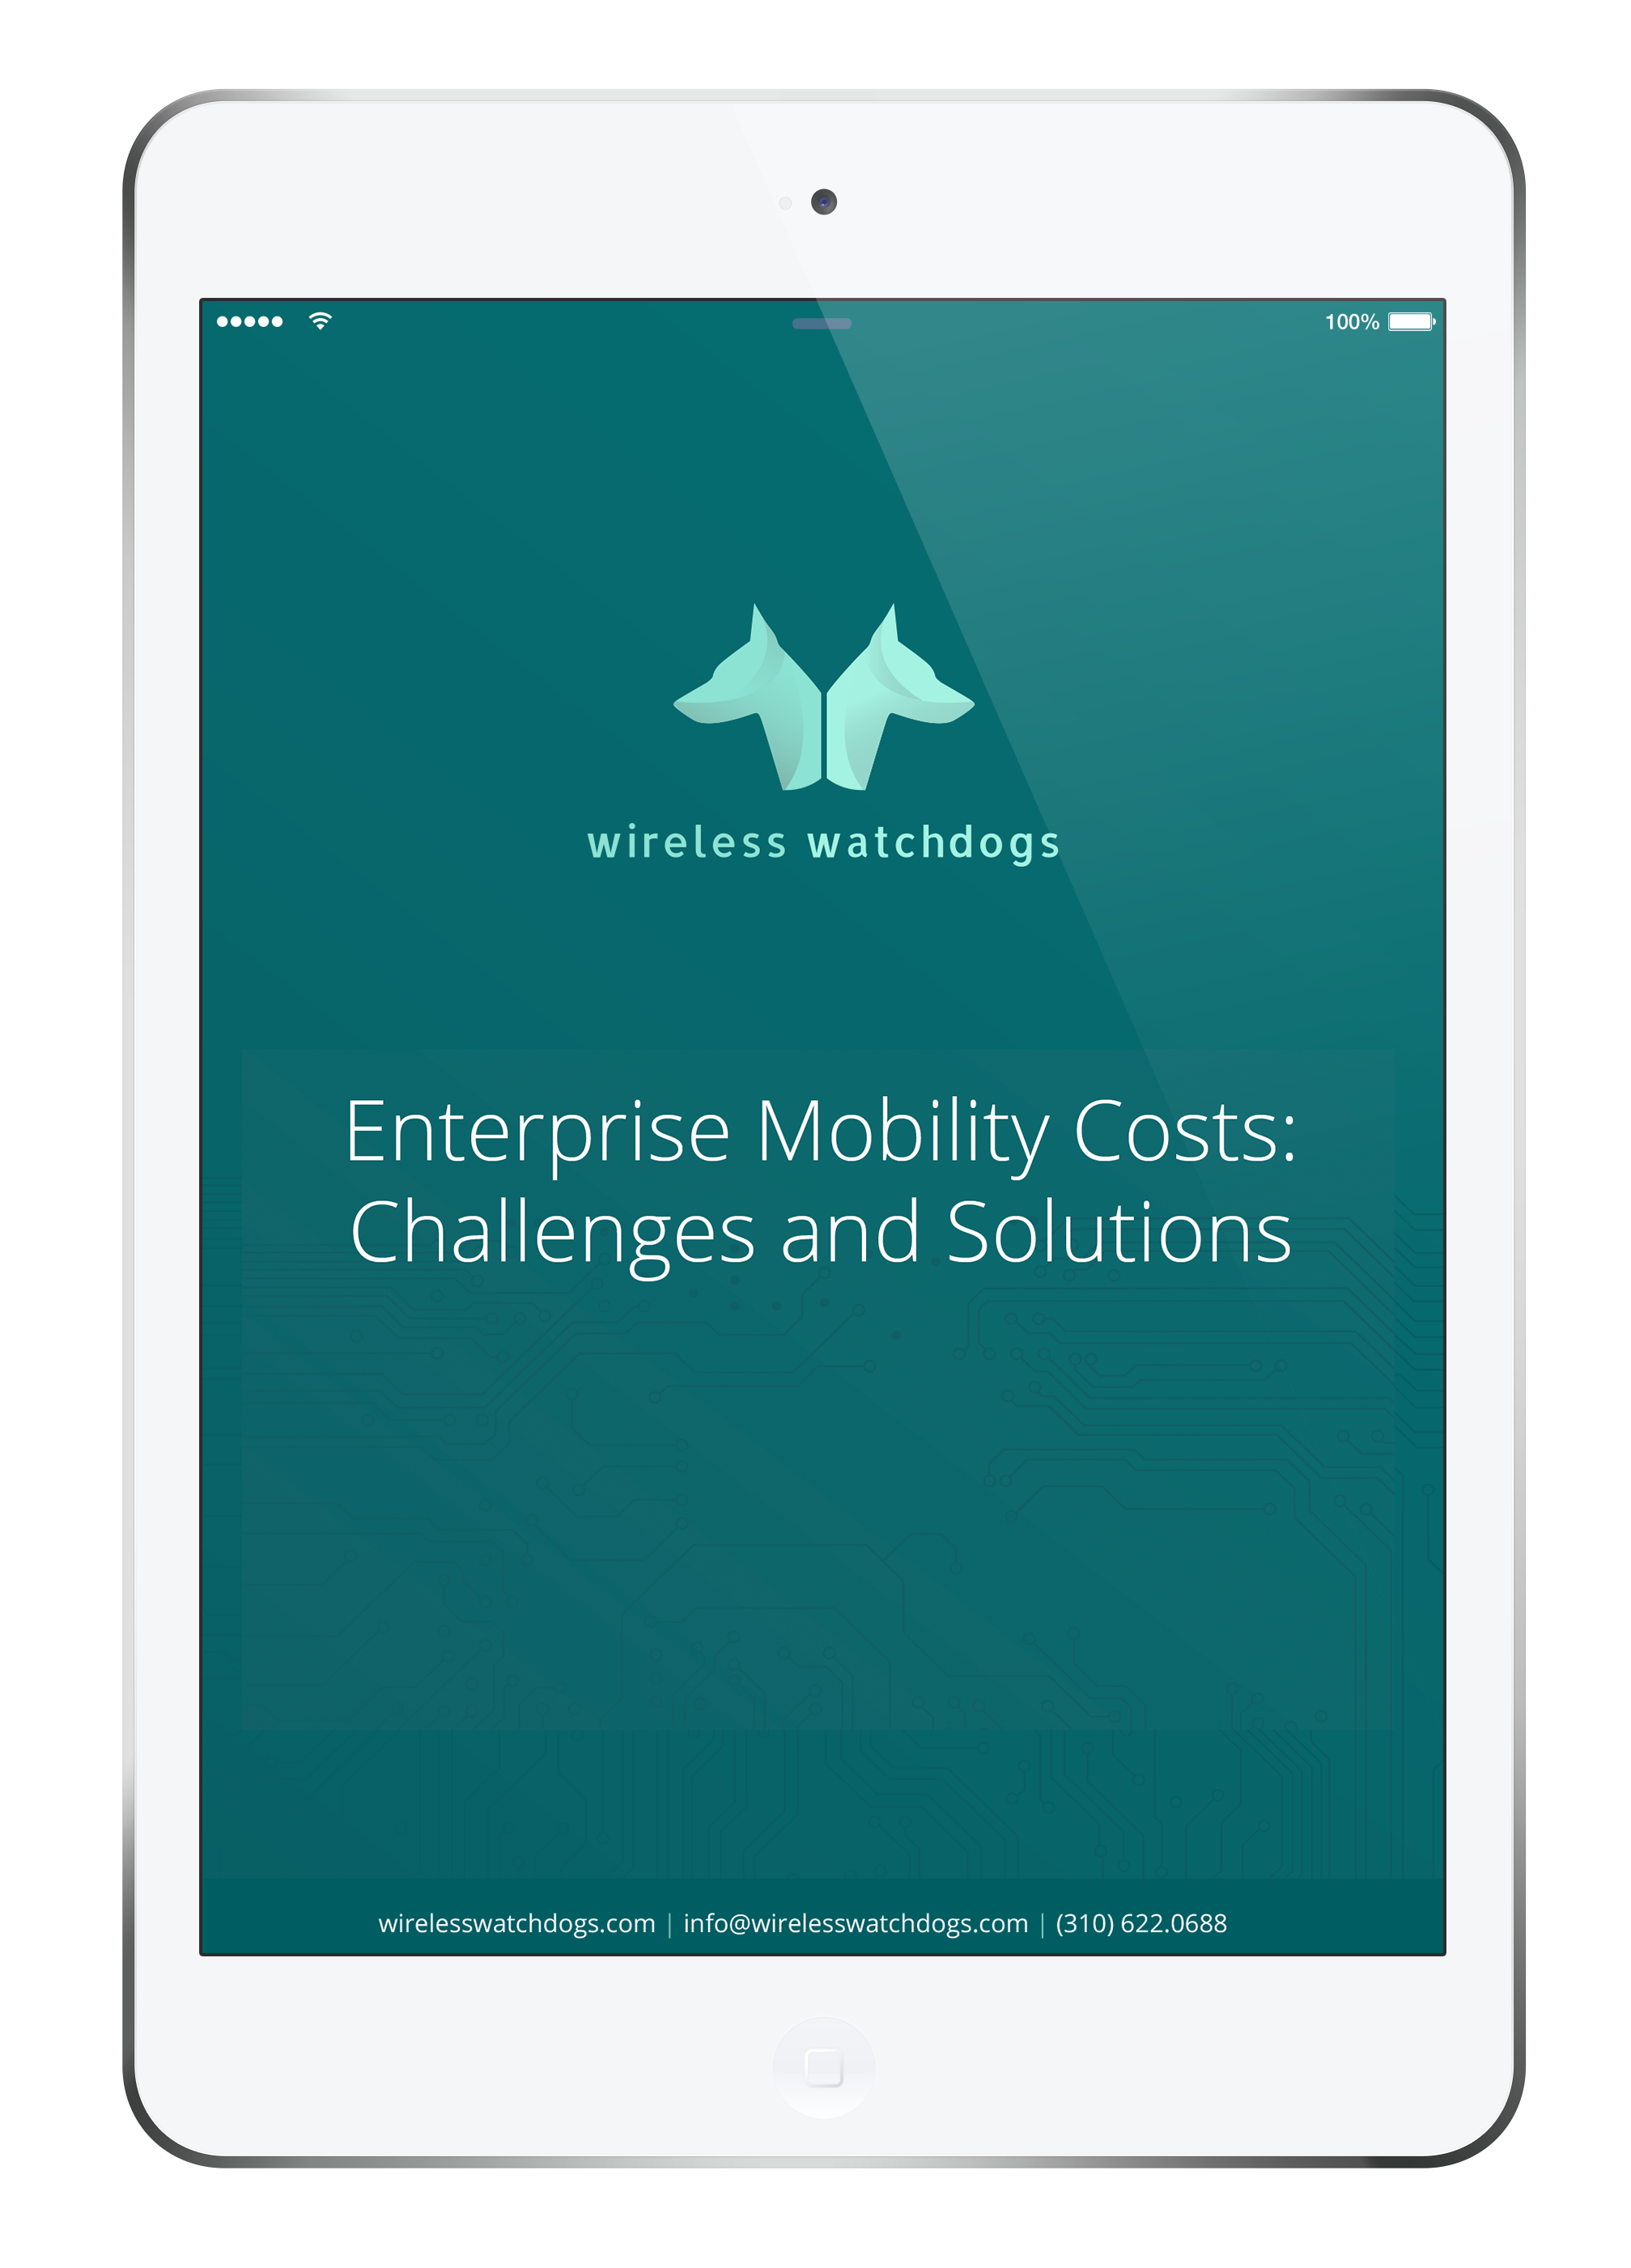 mockup-lp_ww_wp_enterprise_mobility_costs.png